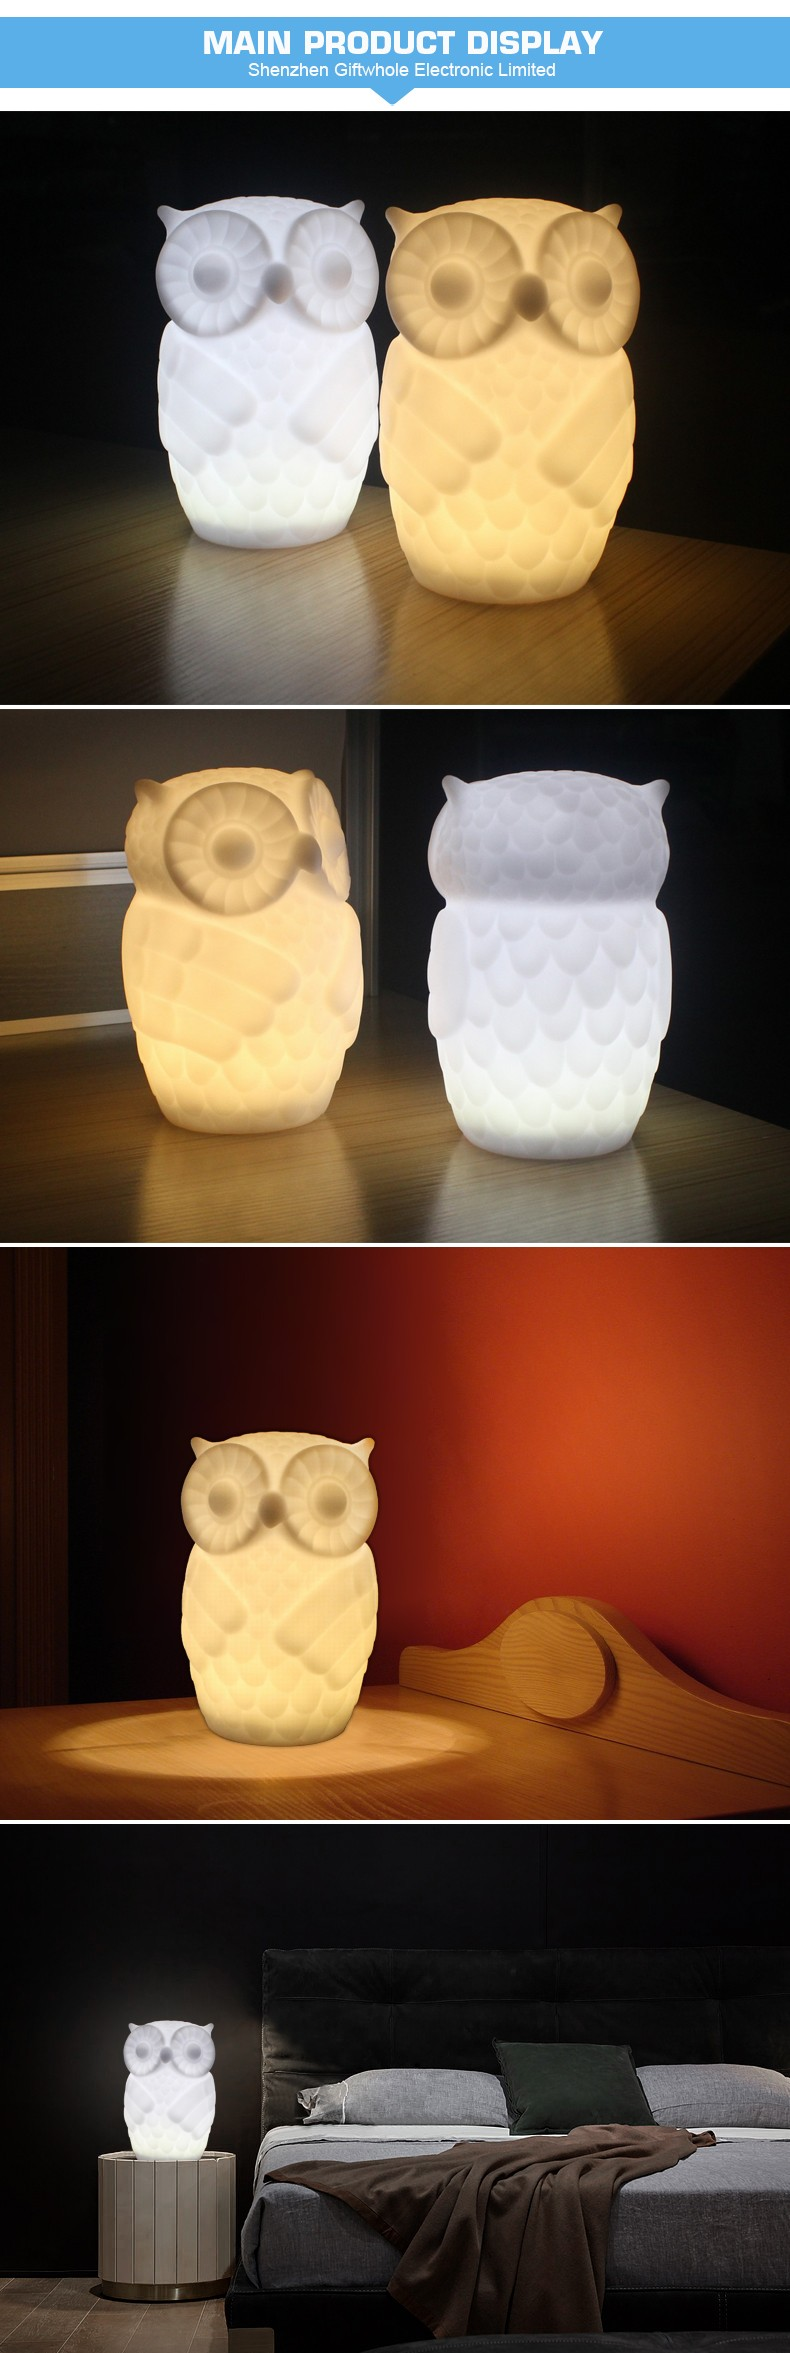 Promotion LED animal shape night lamp for children